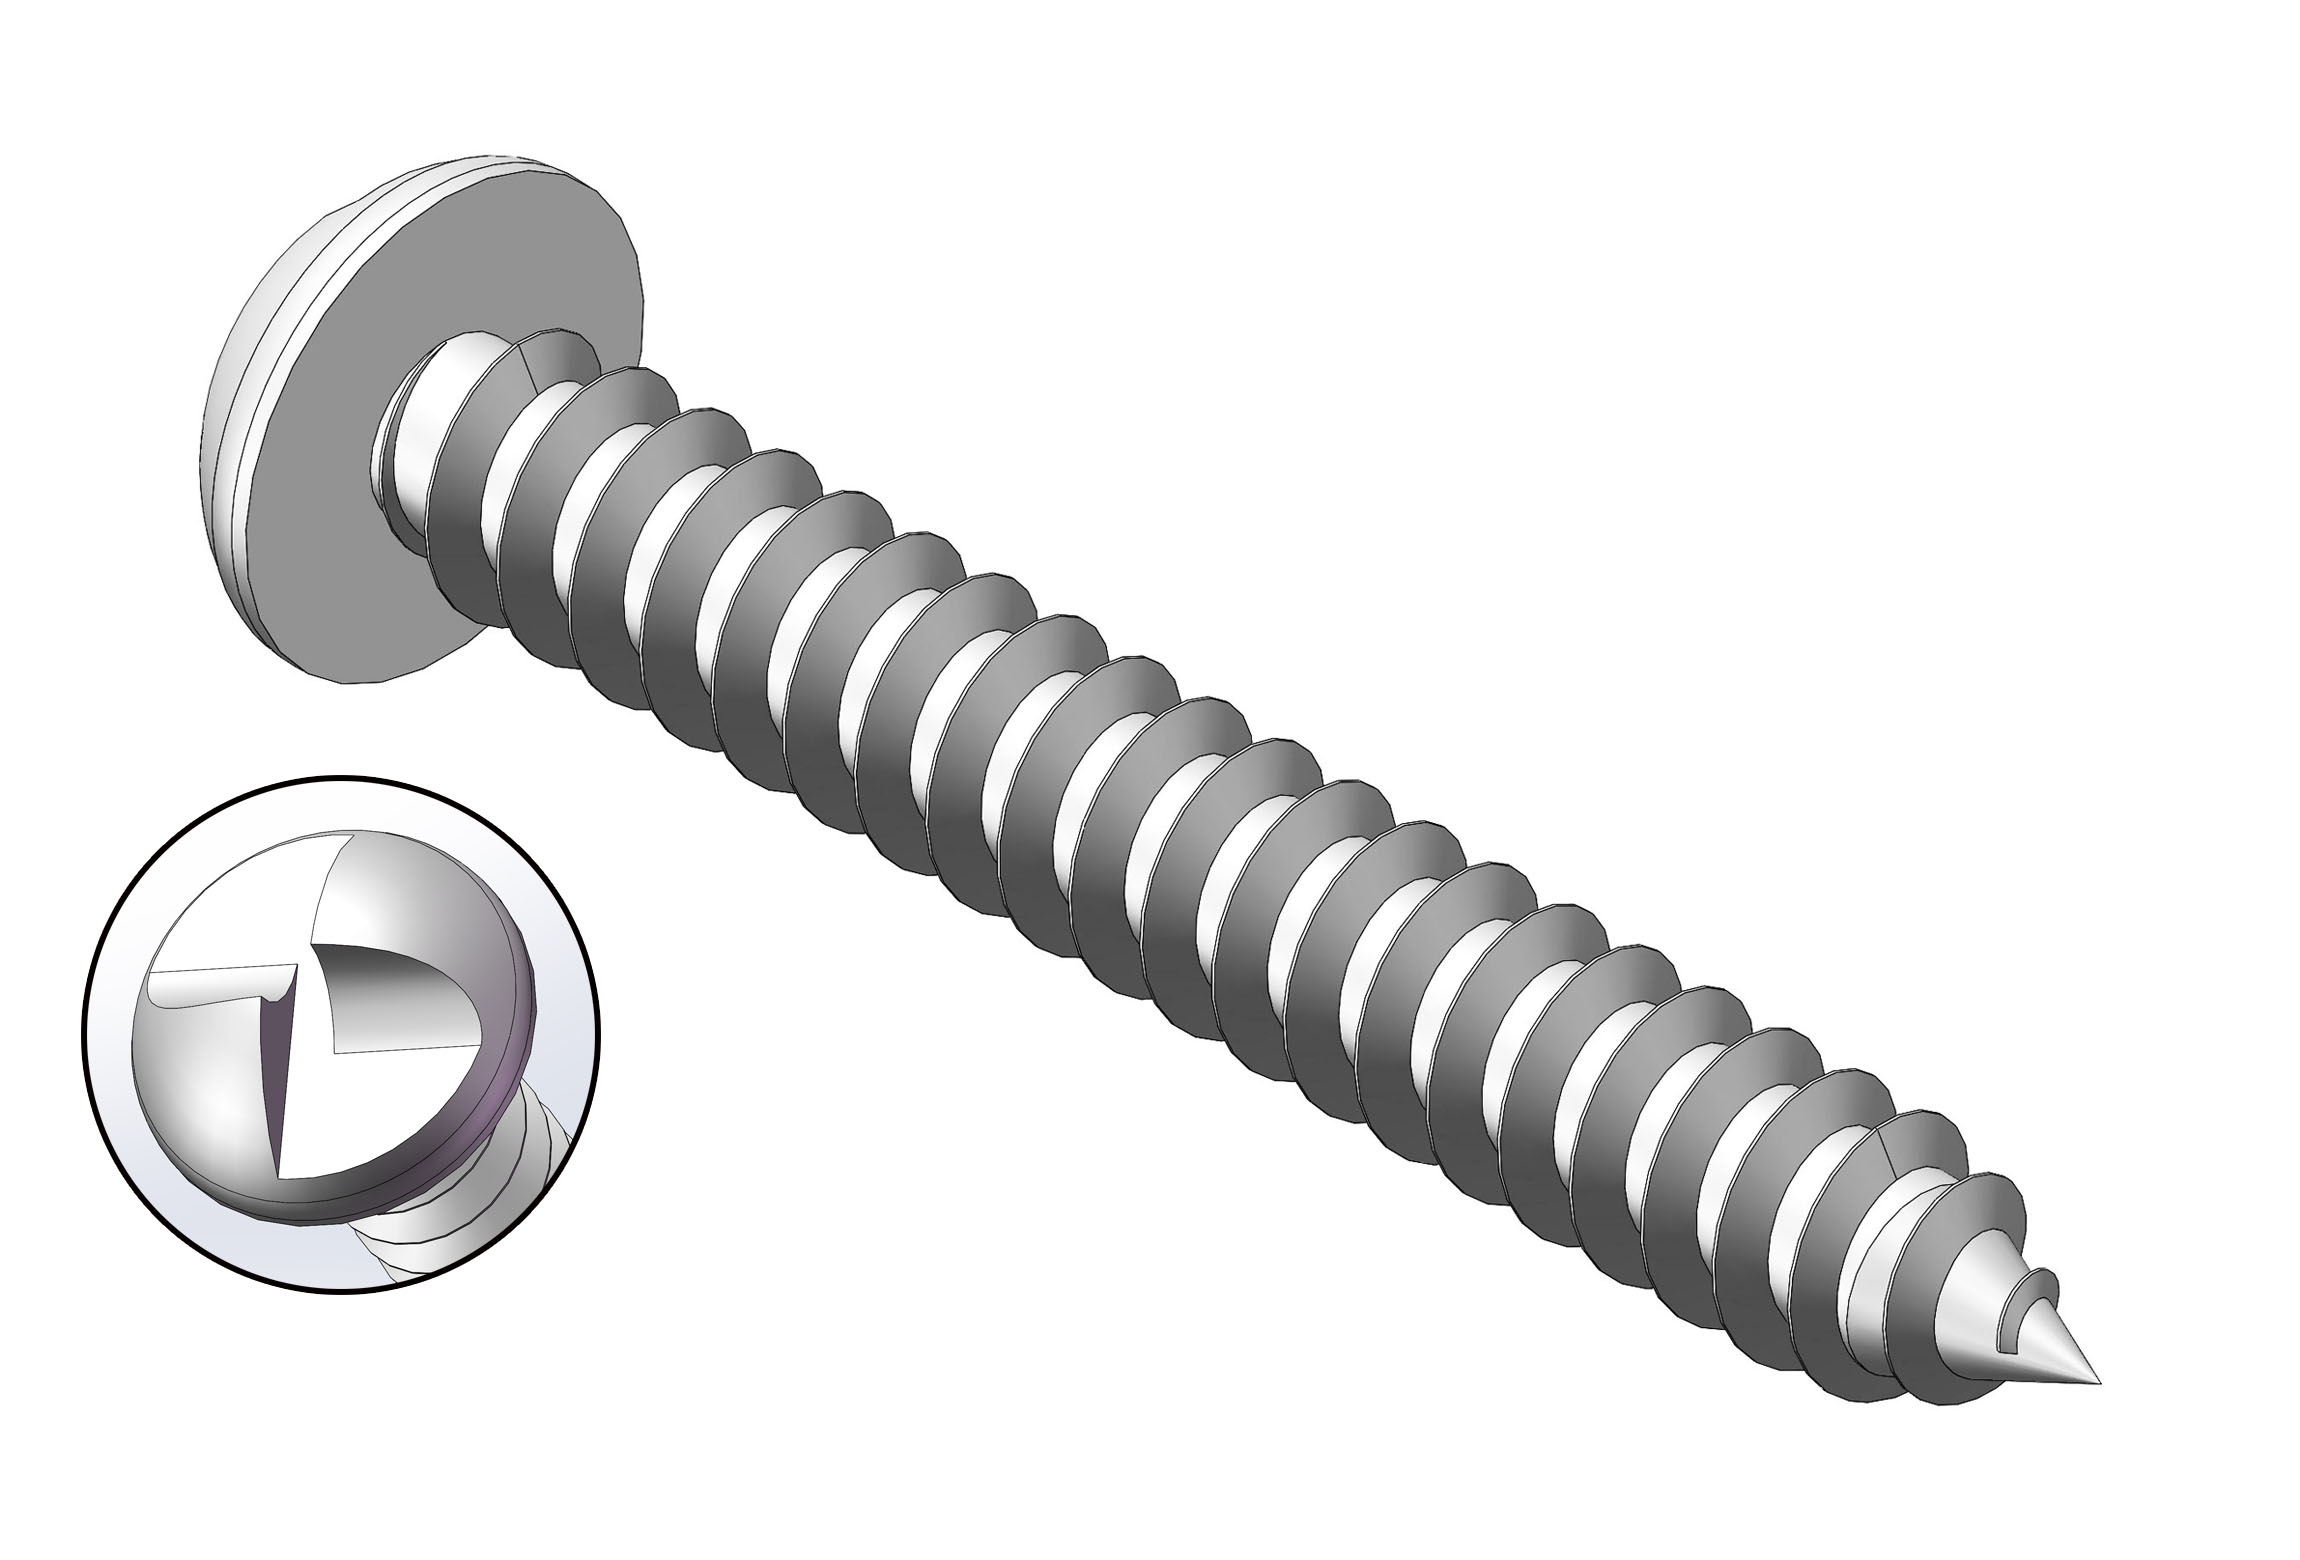 security screws